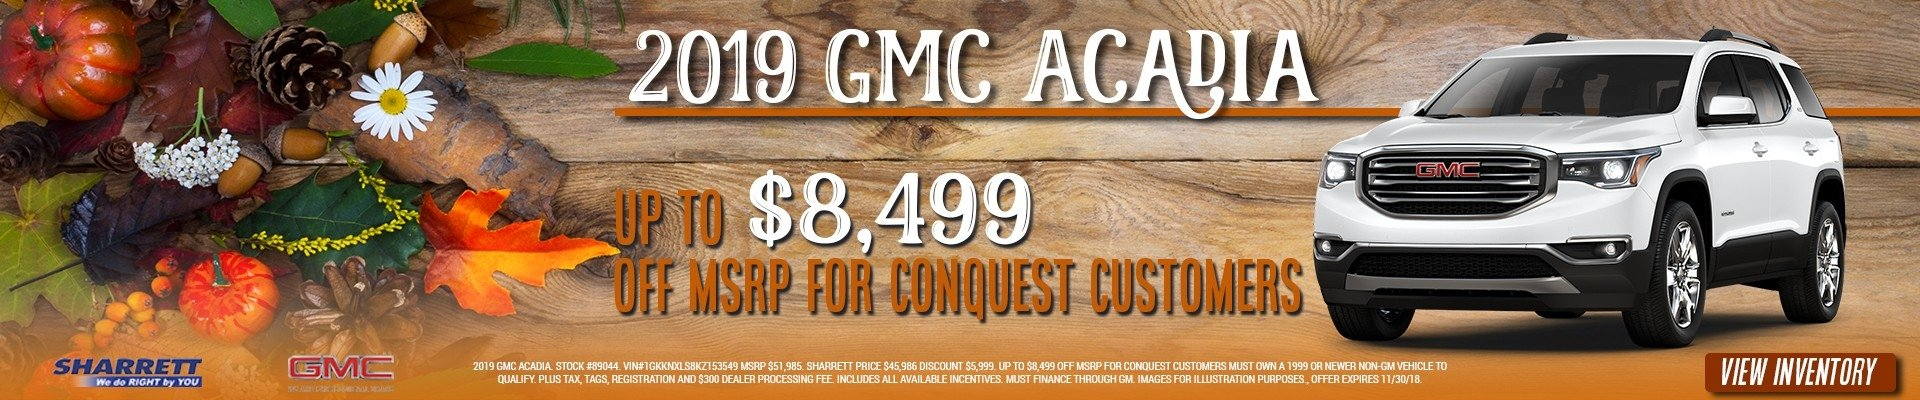 Get up to $8,499 off MSRP on a new 2019 GMC Acadia at Sharrett Buick GMC